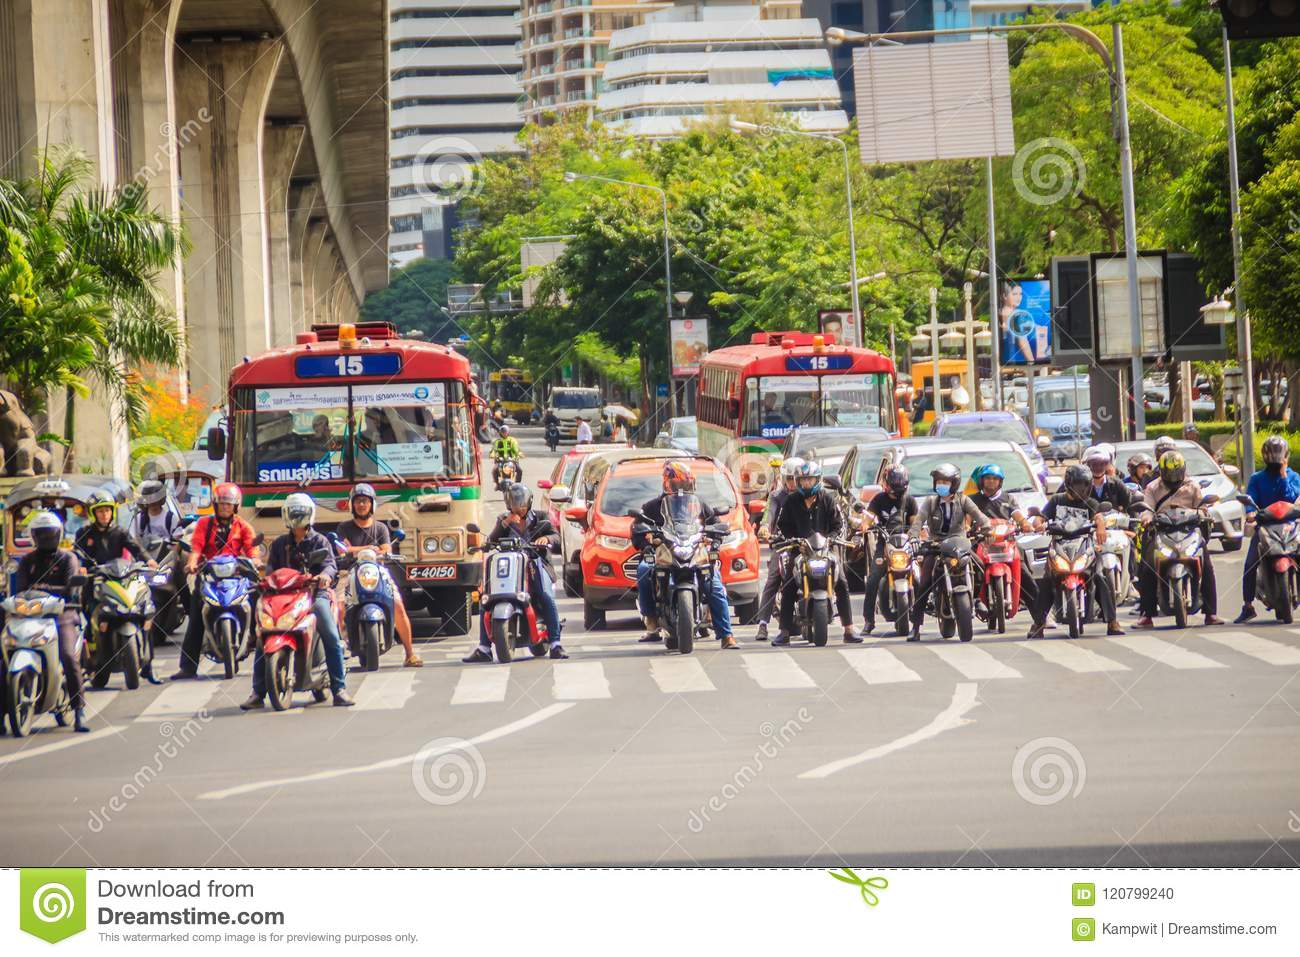 bangkok, thailand - august 21, 2017: many motorcycles, buses and